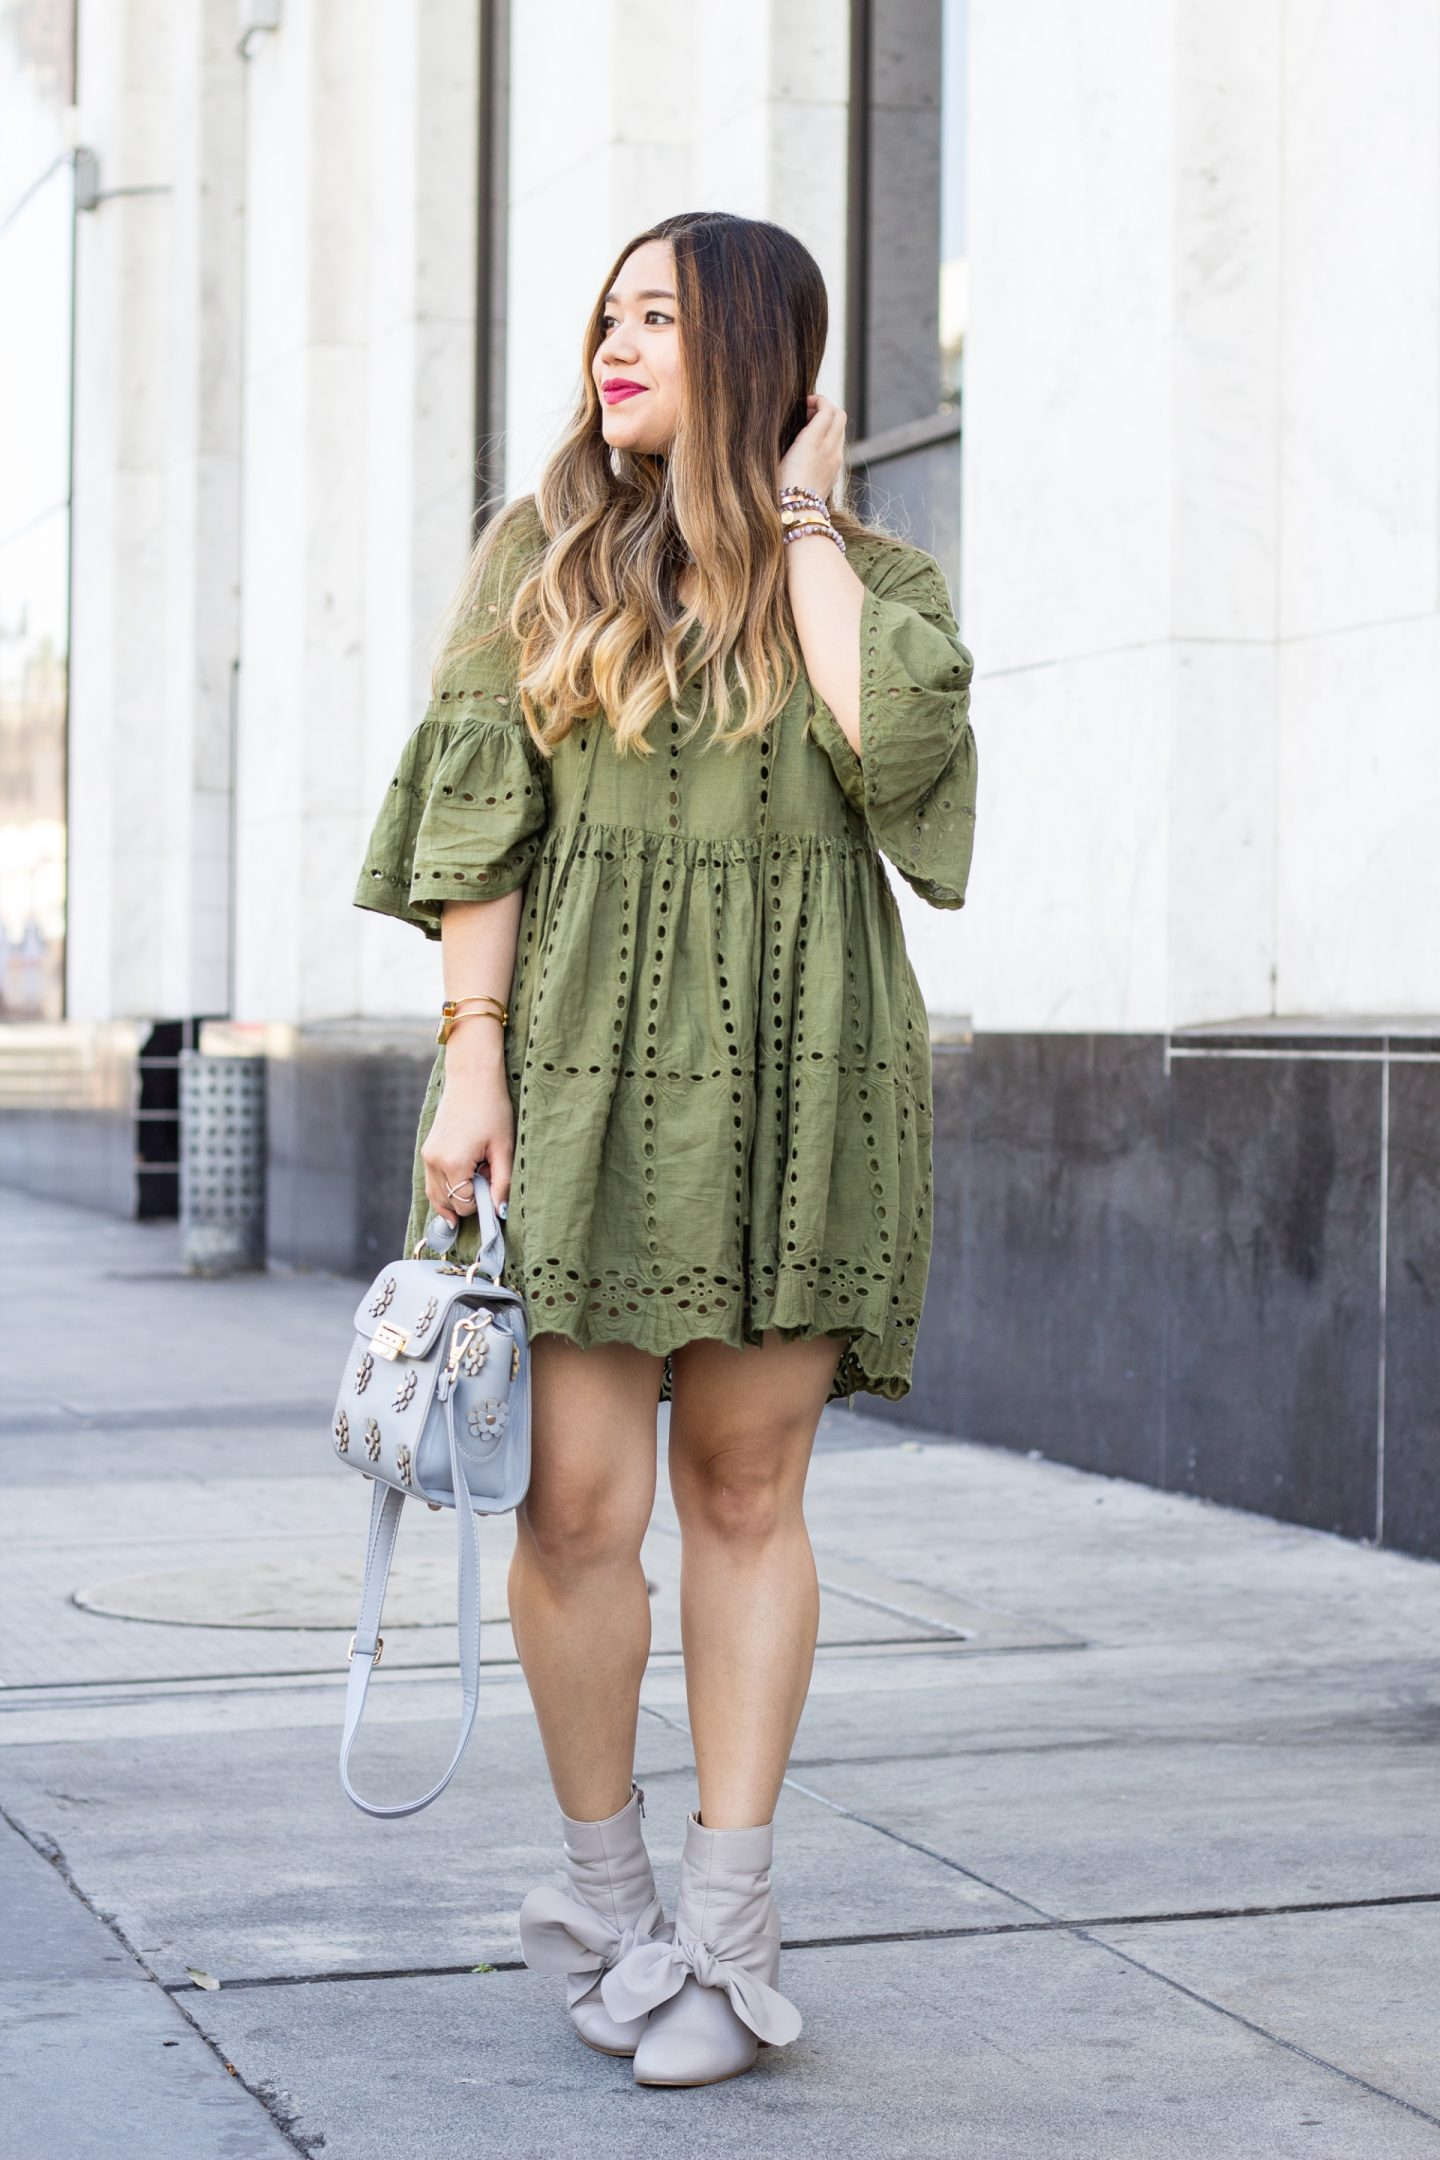 Eyelet Babydoll Dress + Bow Booties